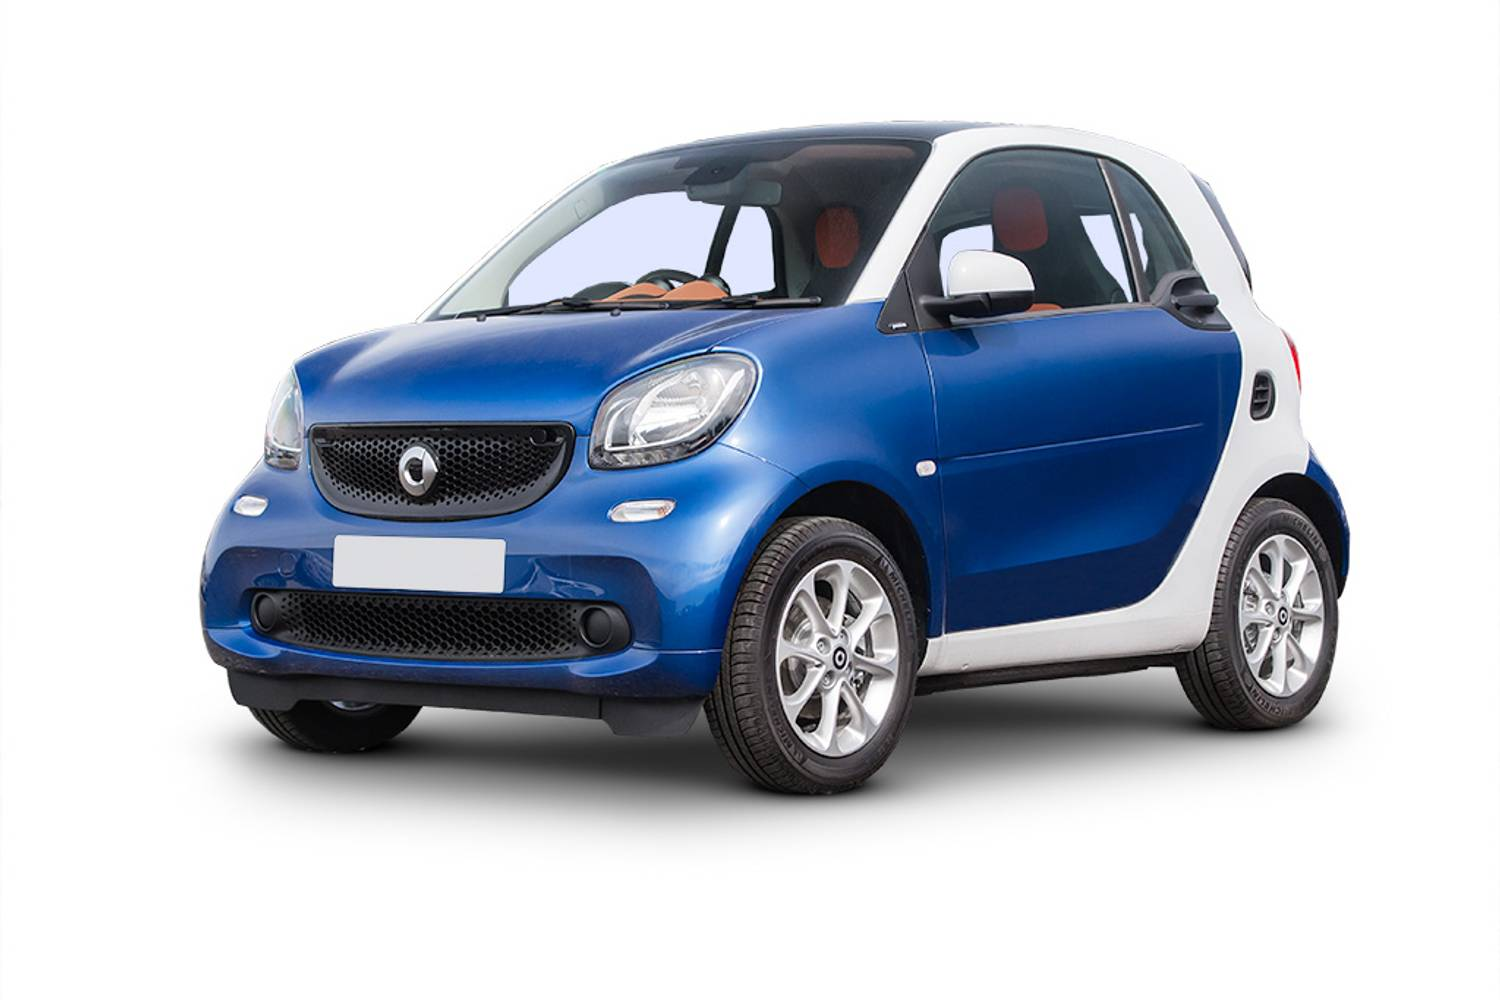 new smart fortwo coupe 0 9 turbo prime sport premium plus 2 door auto 2016 for sale. Black Bedroom Furniture Sets. Home Design Ideas